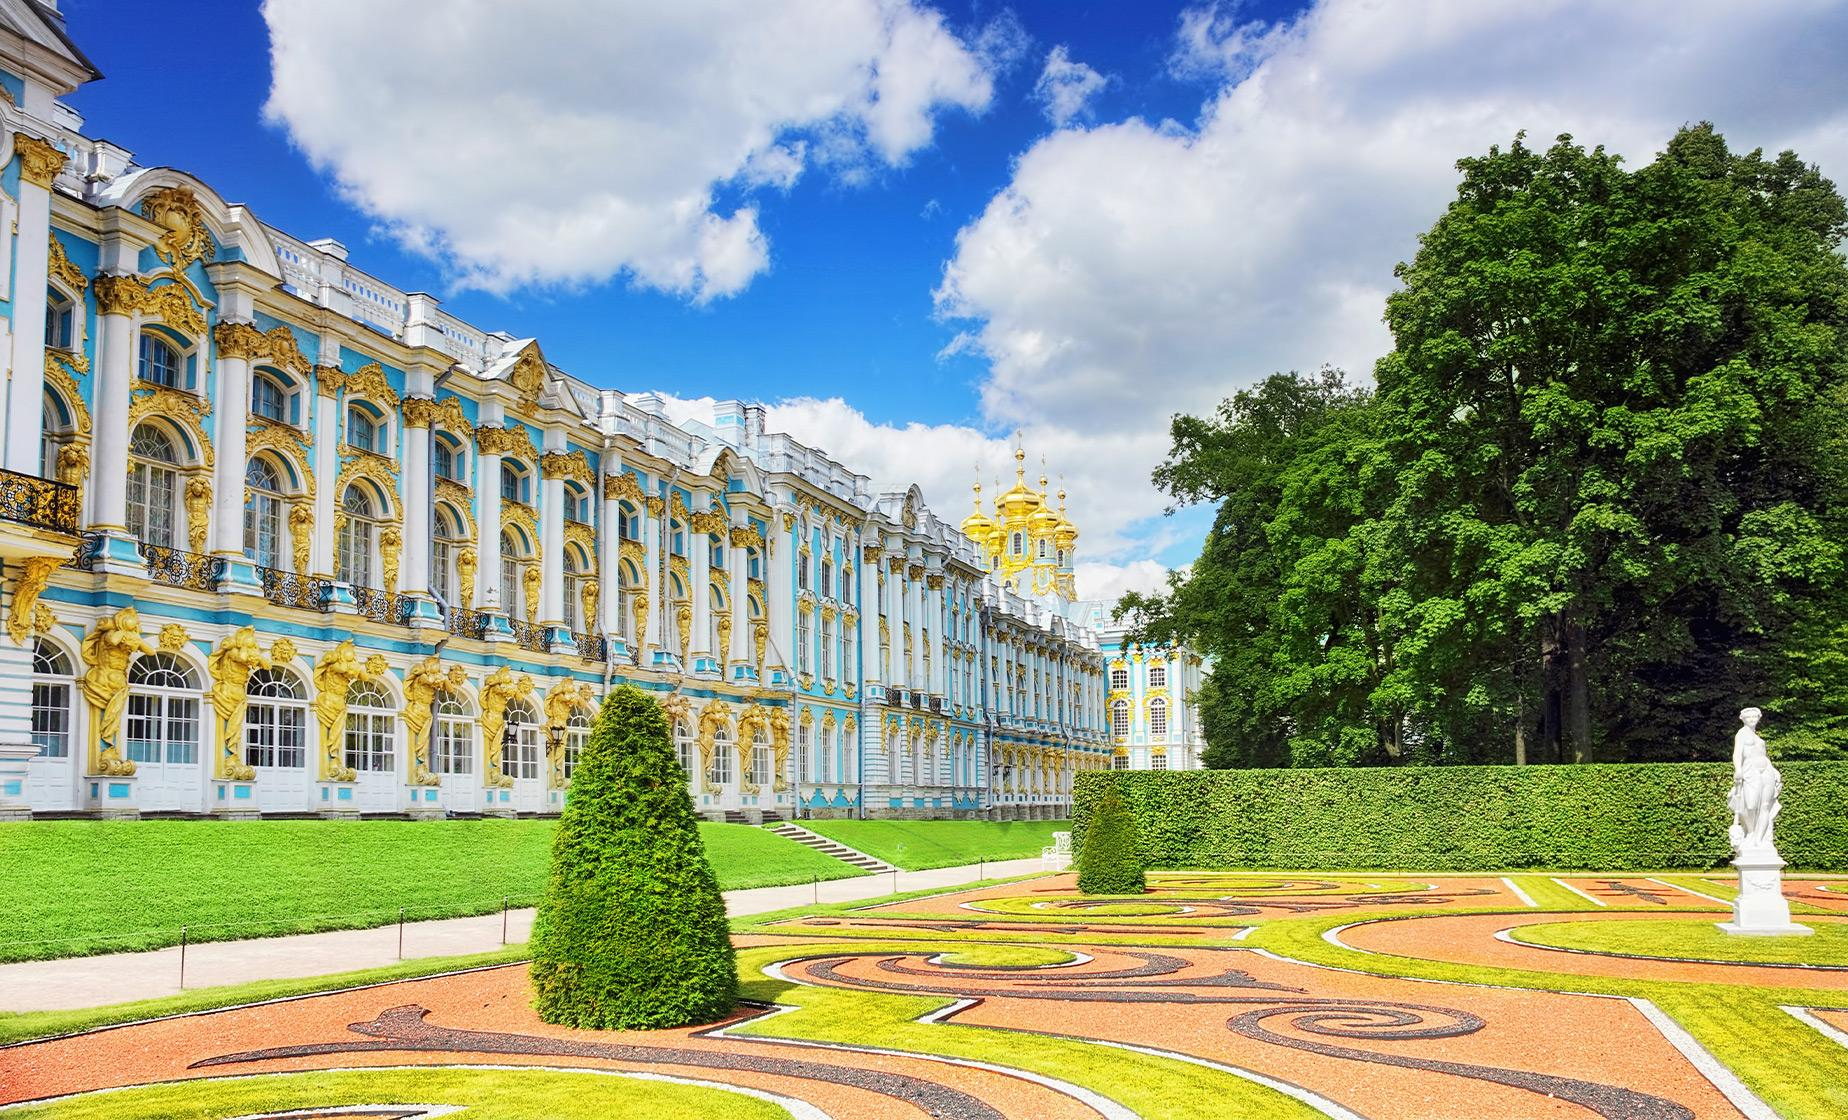 Private Catherine's Palace in Pushkin Tour from St. Petersburg (Visas Included)